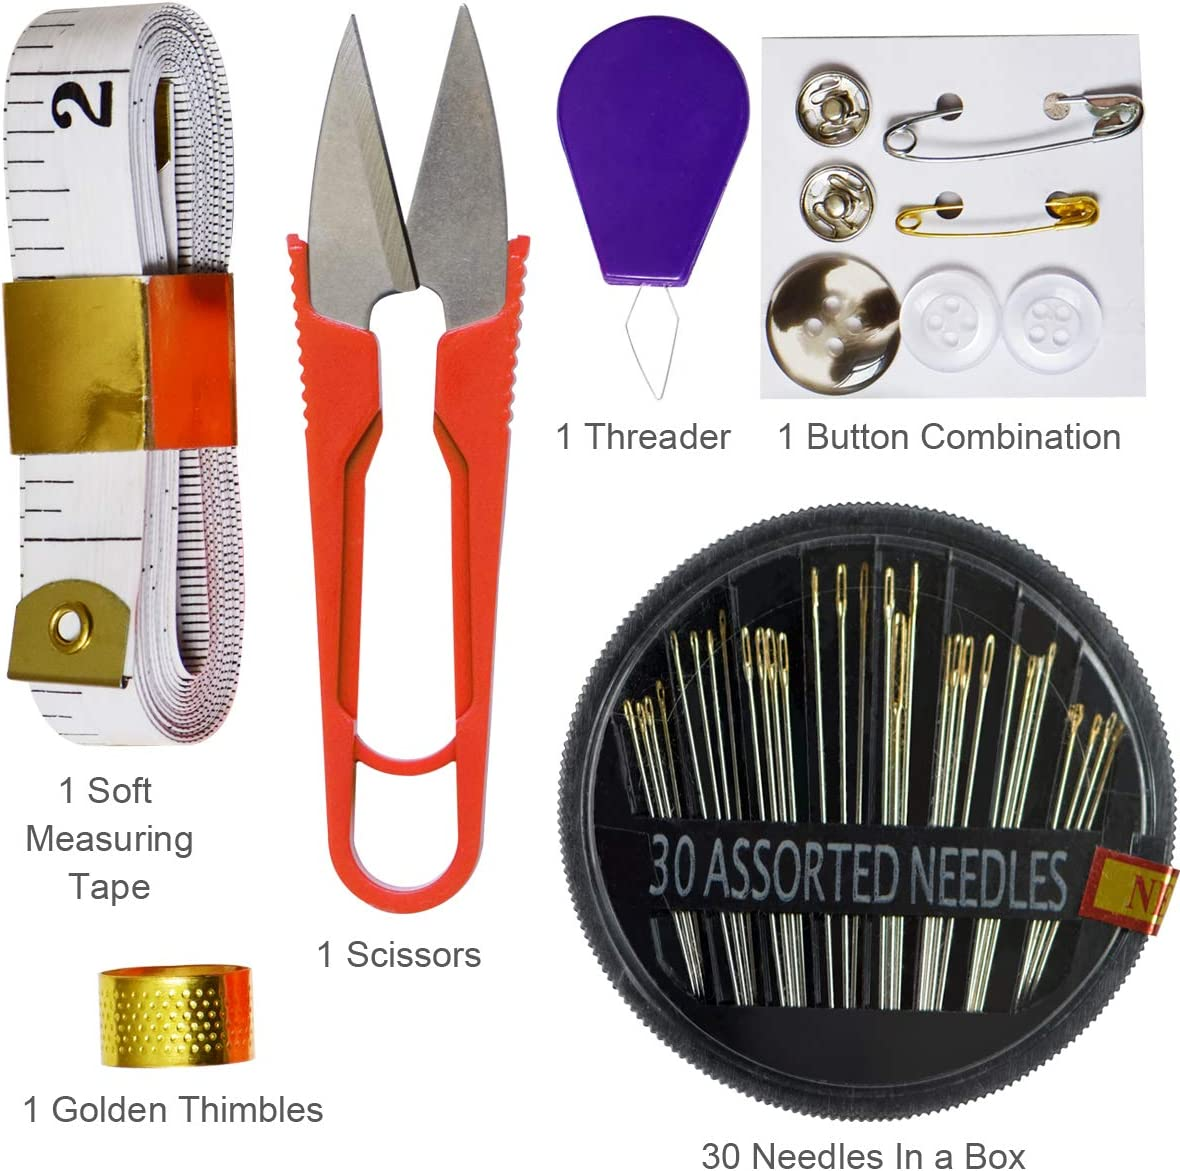 3M Soft Measuring Tapes Thimble for Manual and Machine Sewing Scissor-Buttons Sewing Thread 24 Color 1000 Yards Polyester Sewing kits-30 PCS Gold Needle